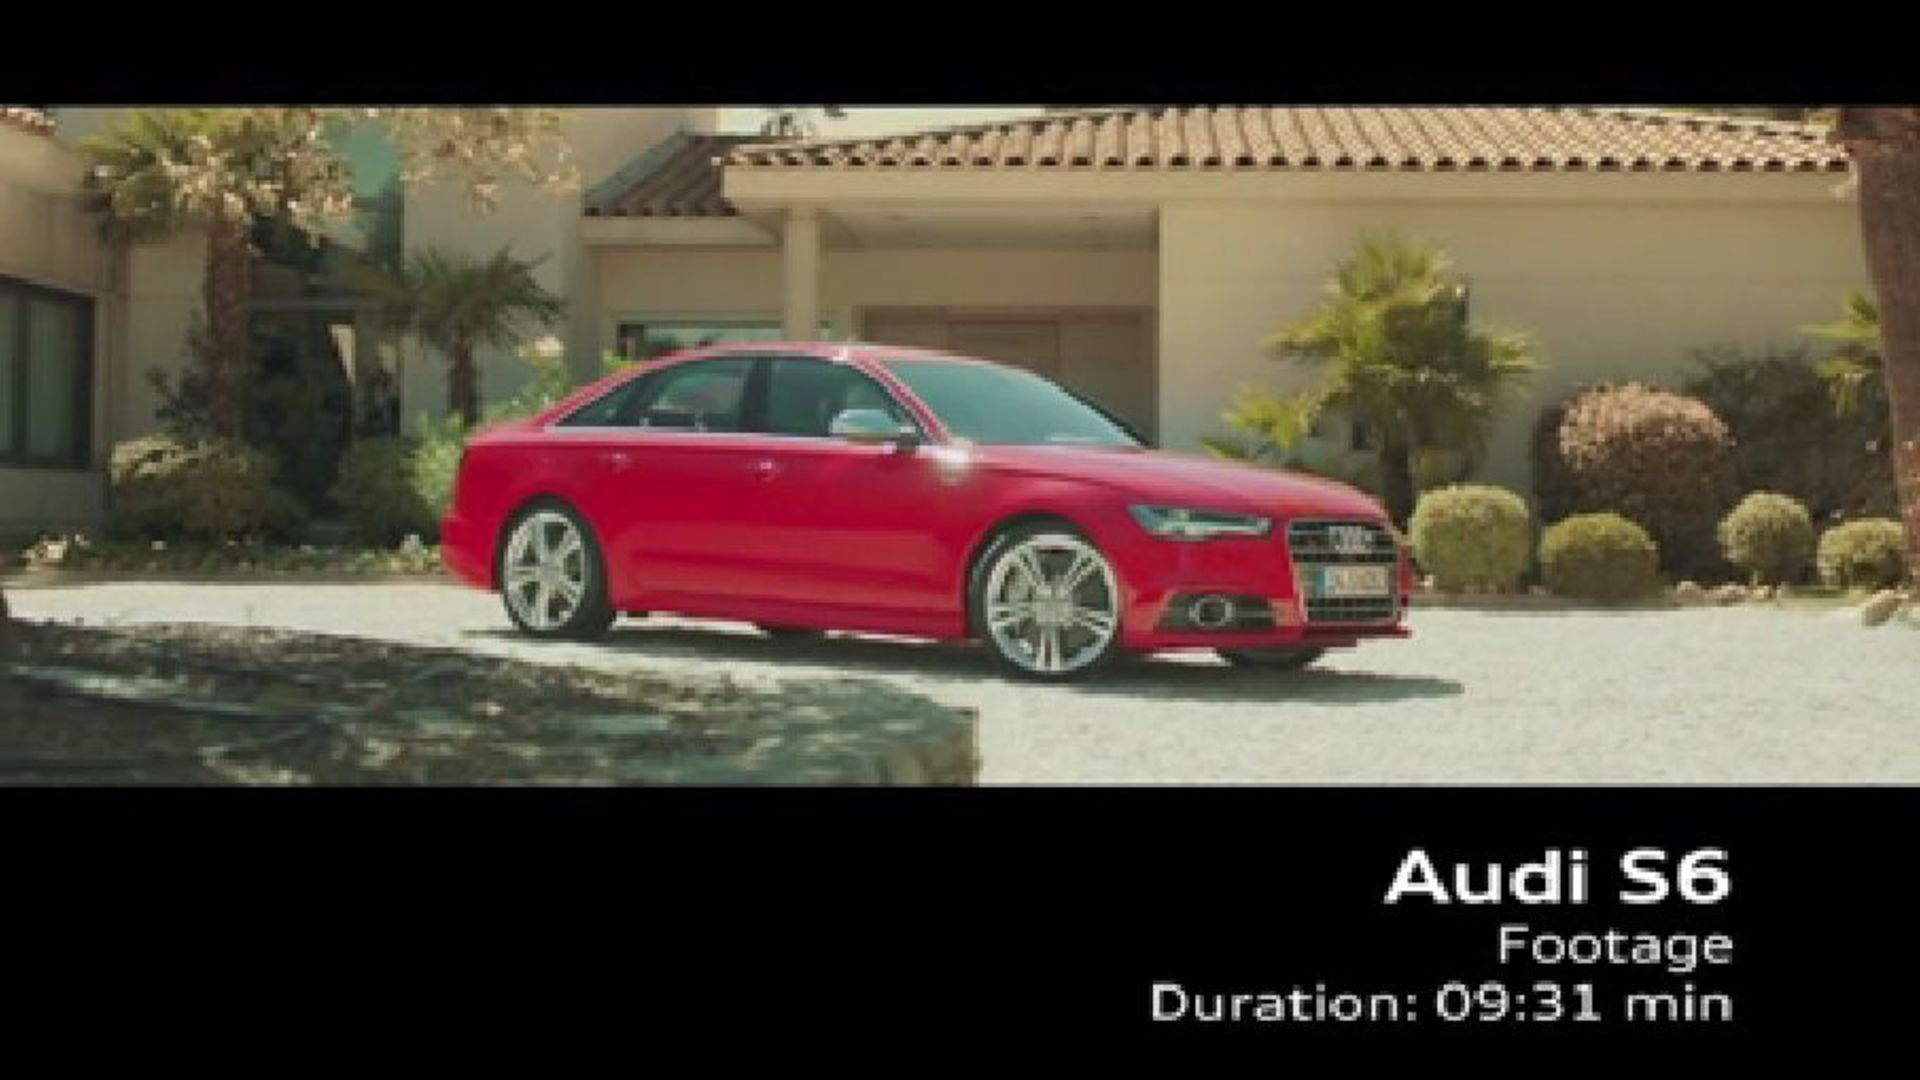 The Audi S6 - Footage